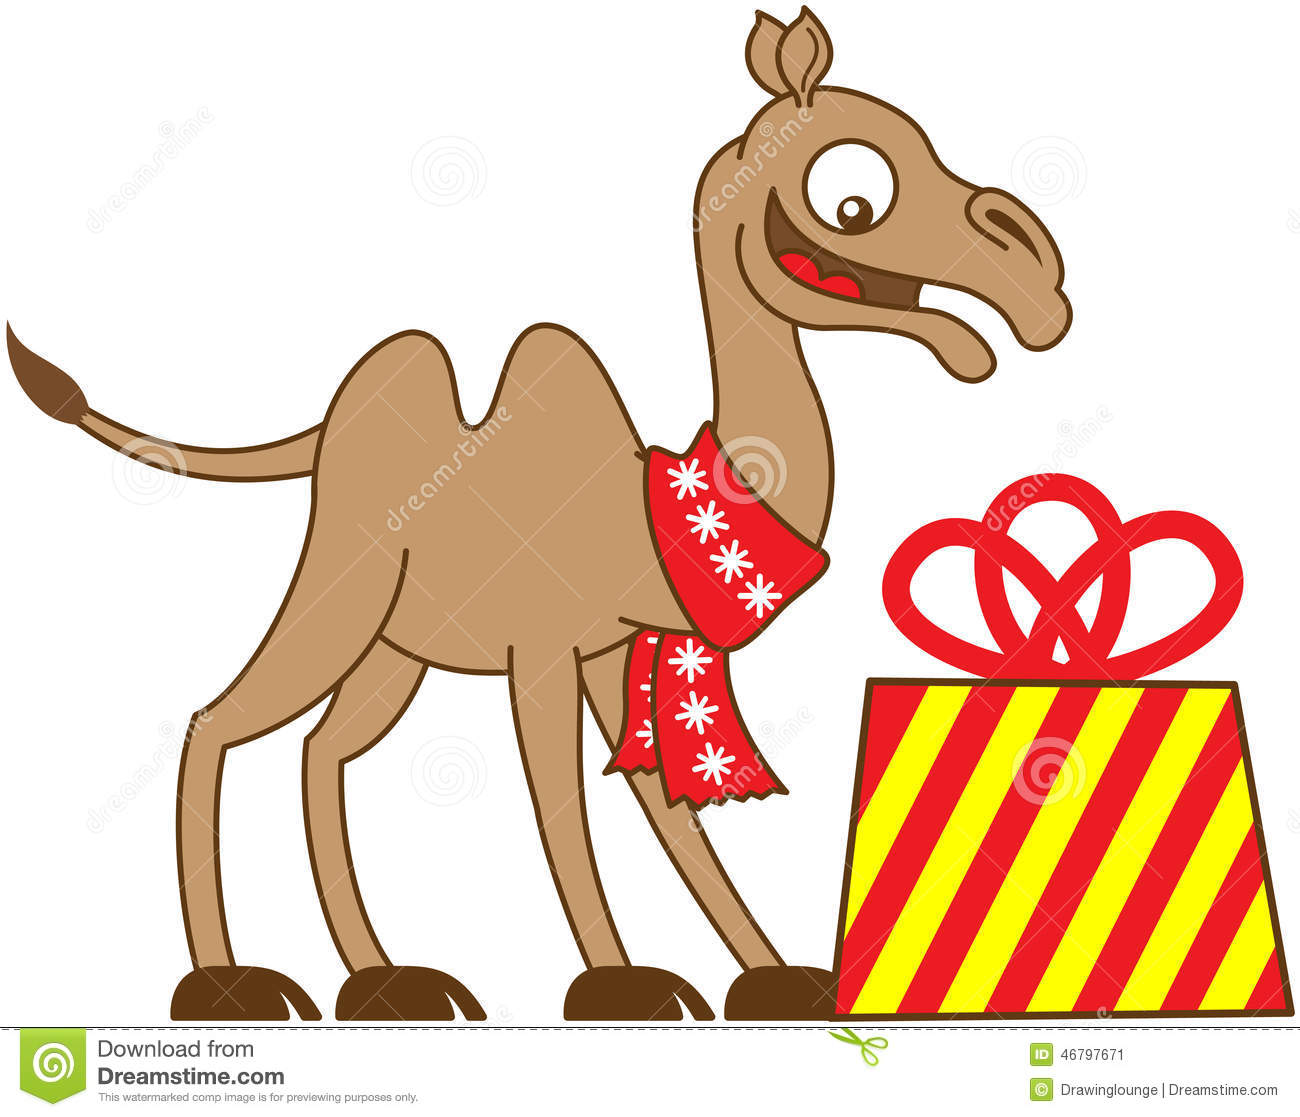 Cool Camel Receiving A Christmas Gift Stock Vector - Image: 46797671